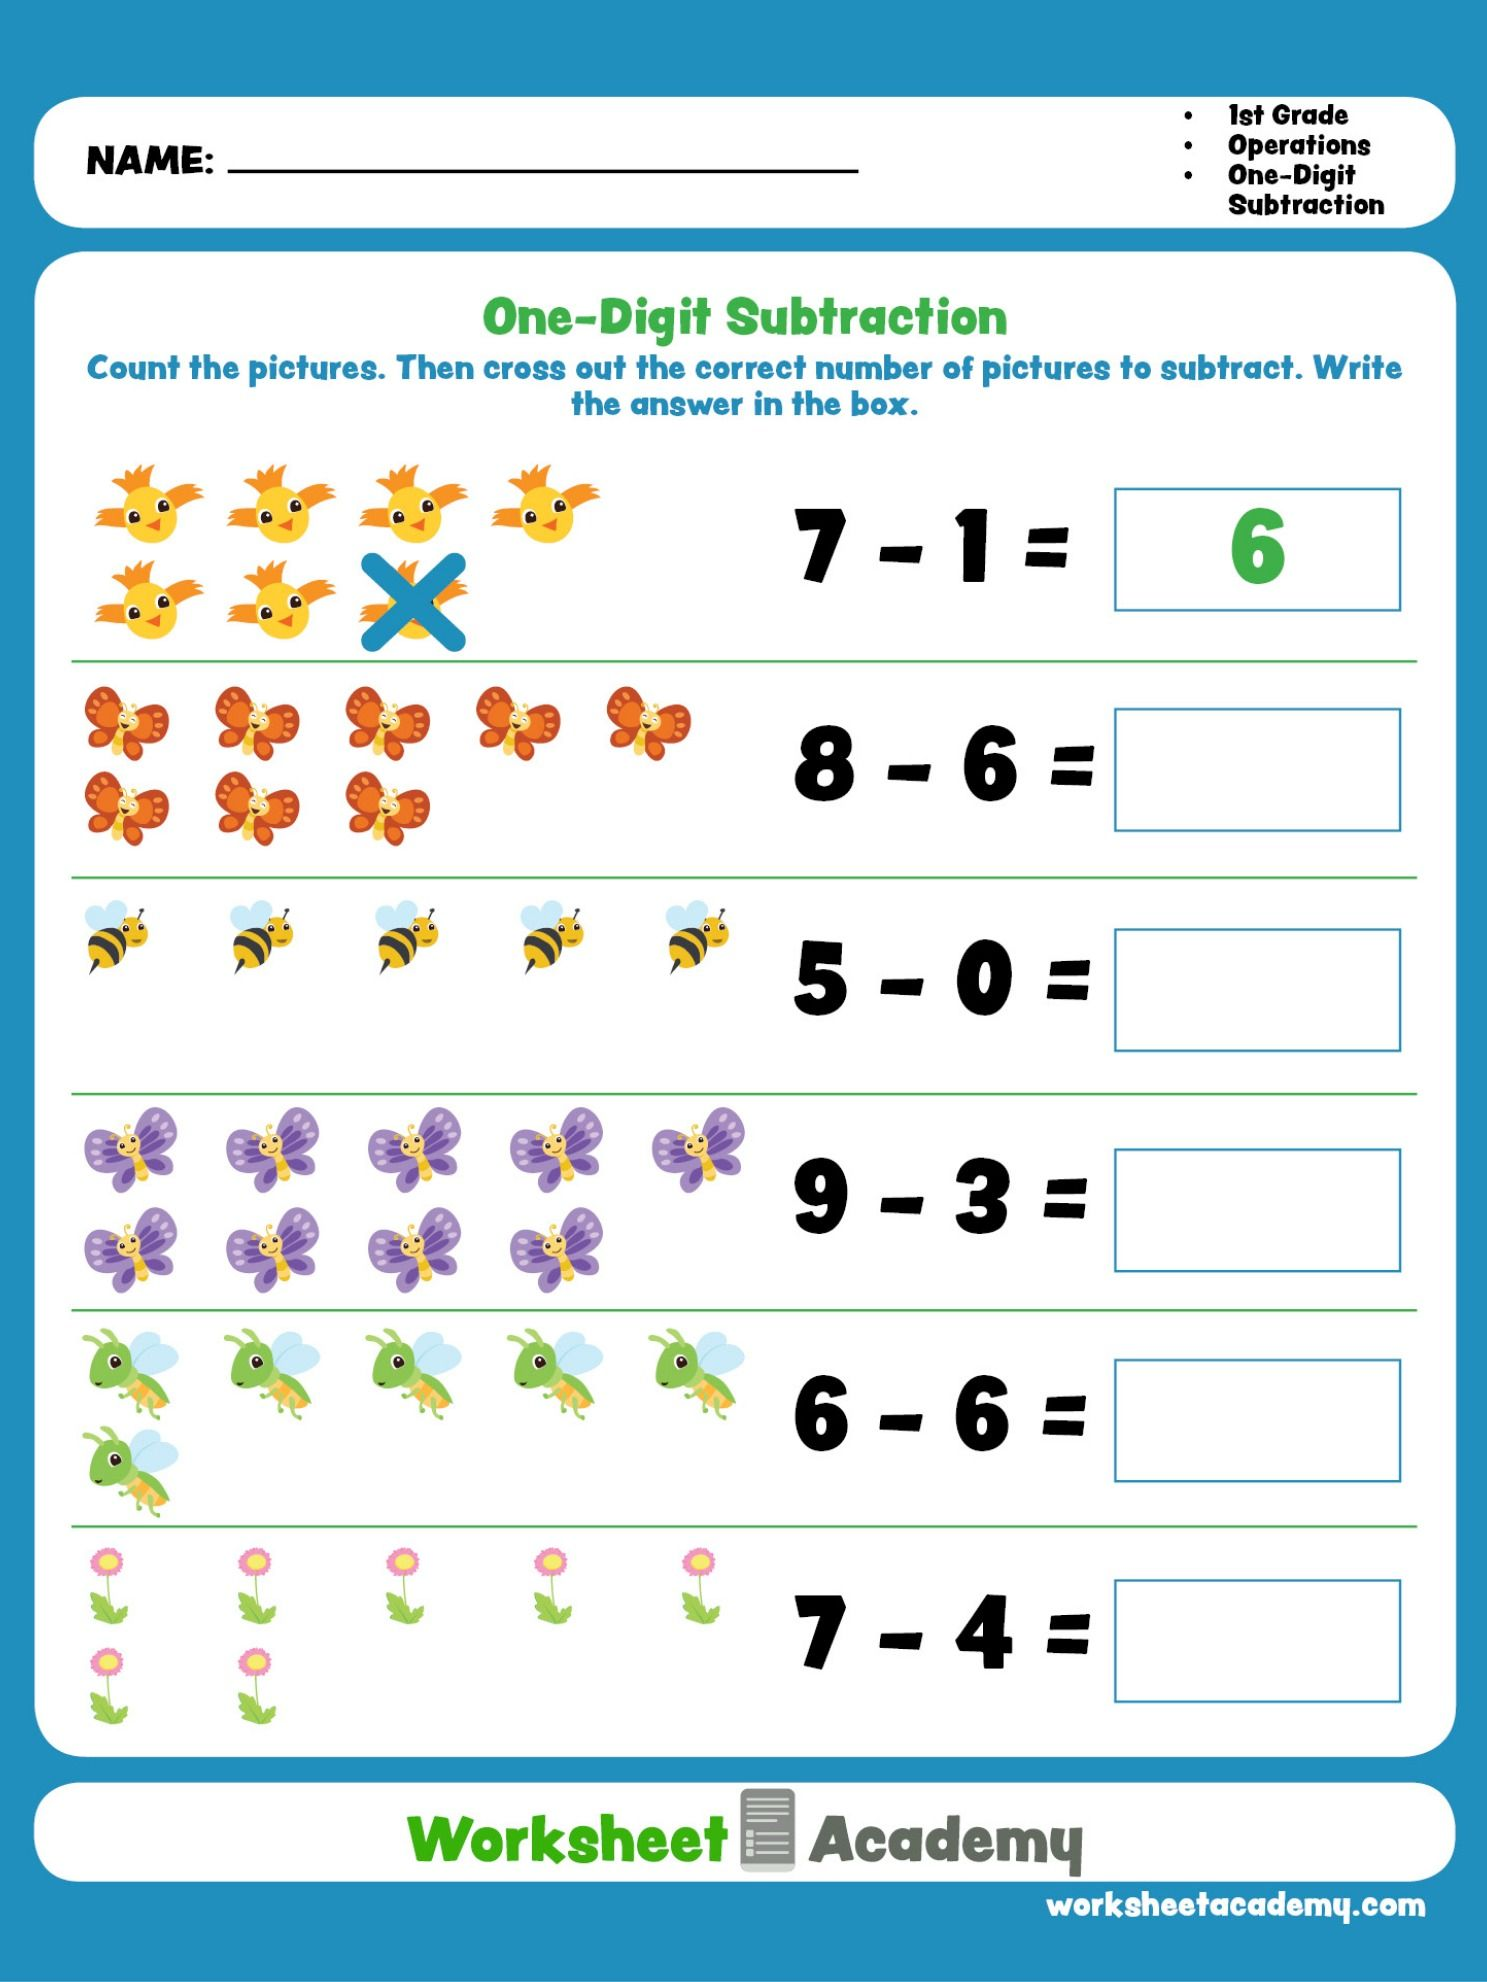 Help your student master beginning subtraction. First